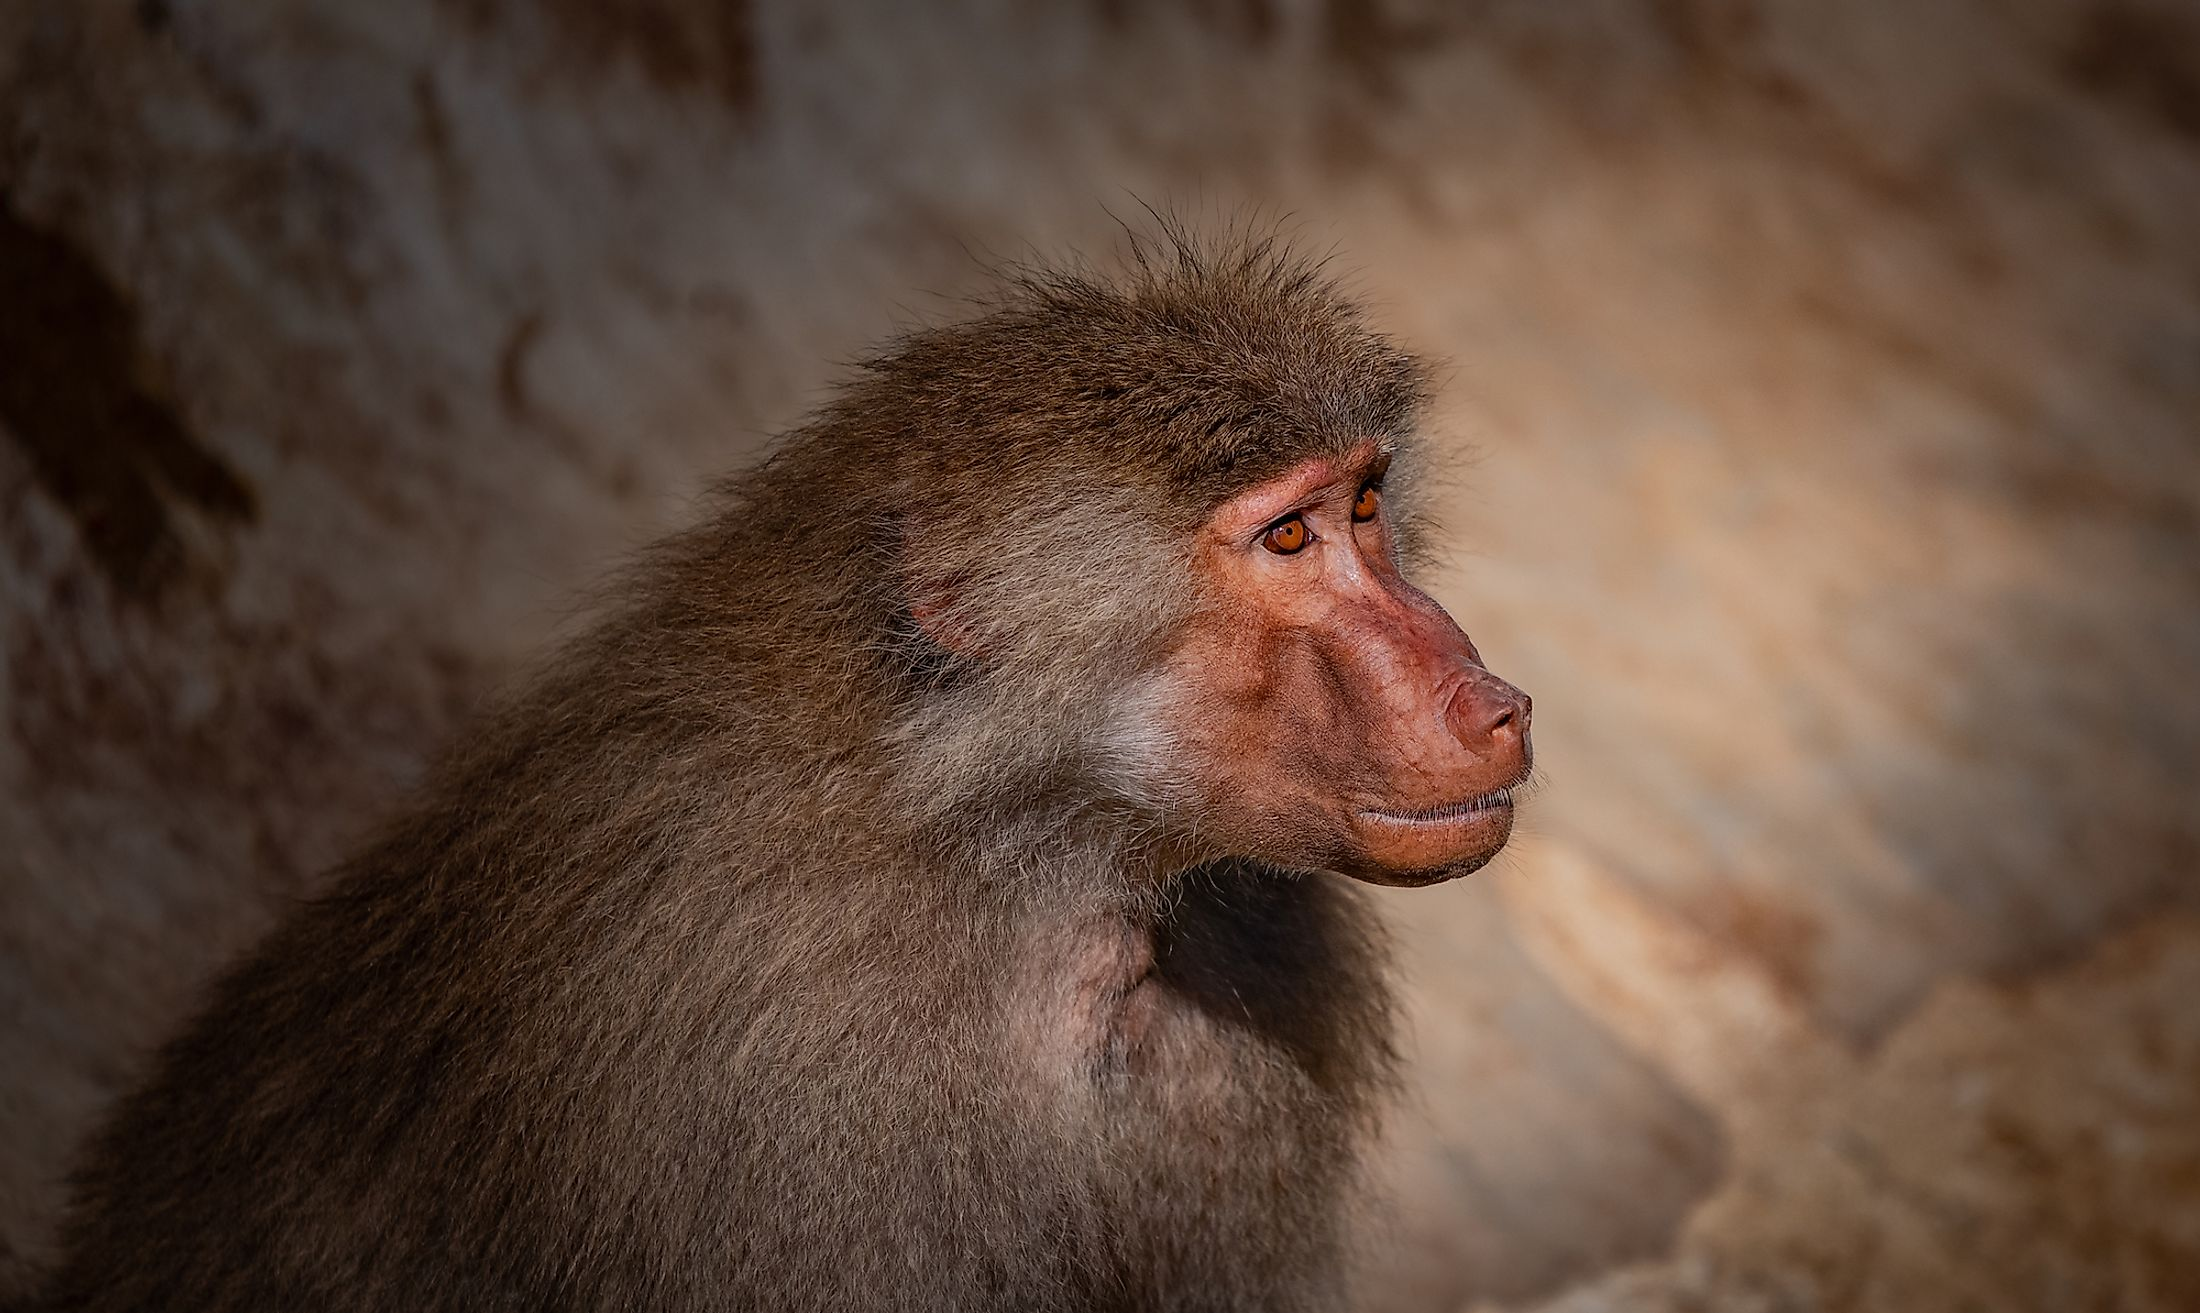 A Hamadyras baboon in the desert. Image credit: Ozer Giray Photography/Shutterstock.com